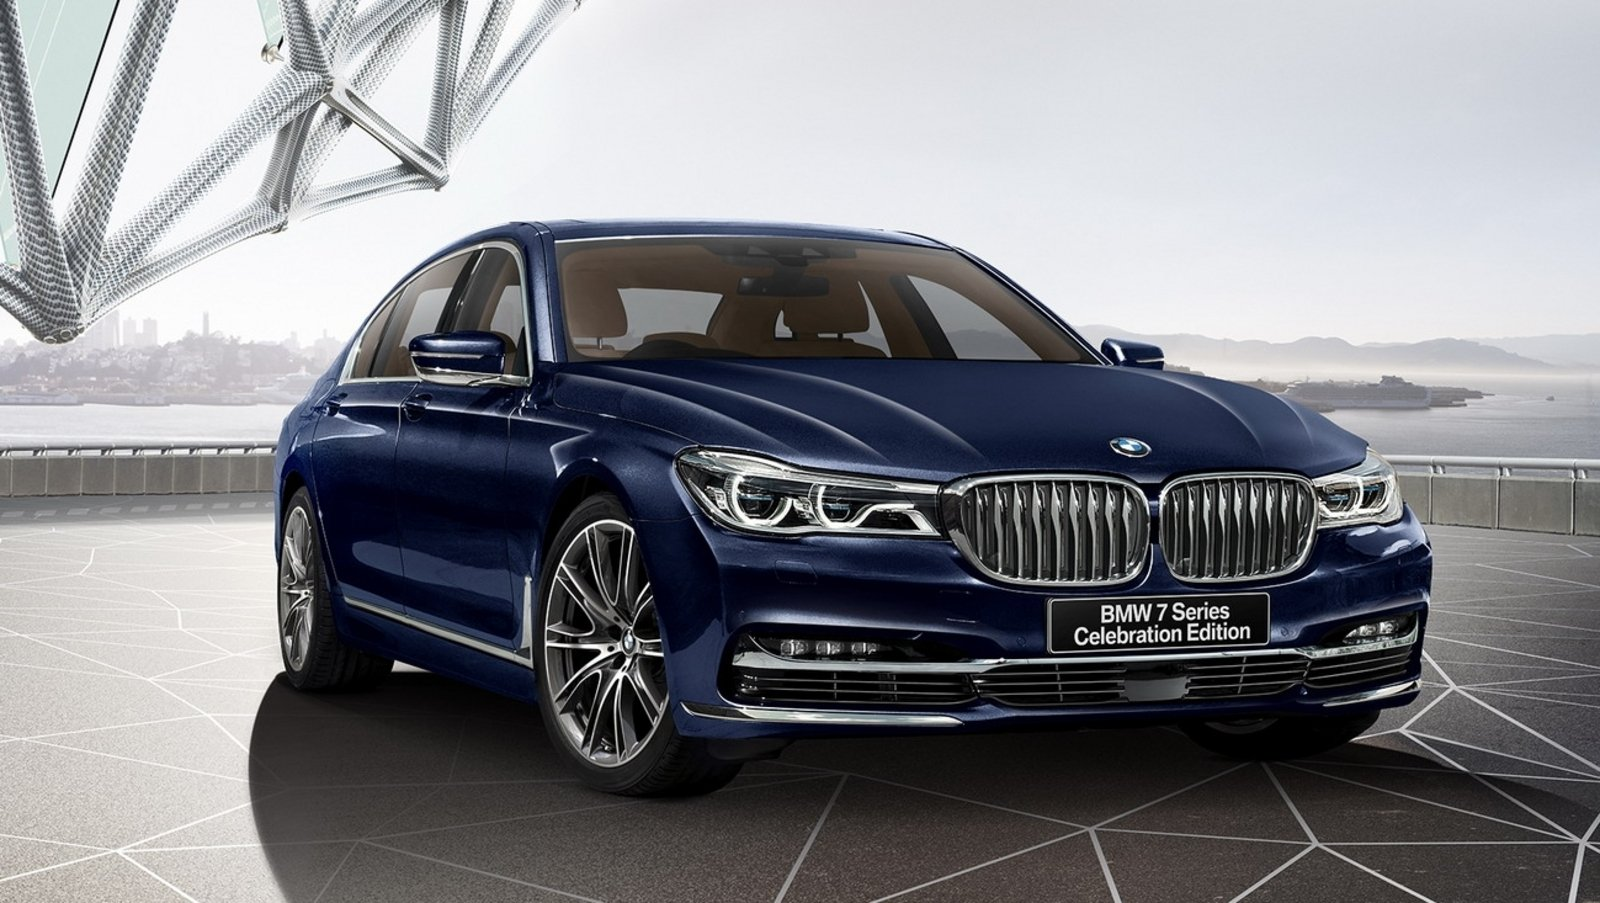 2016 BMW 750Li Celebration Edition Review - Gallery - Top ...